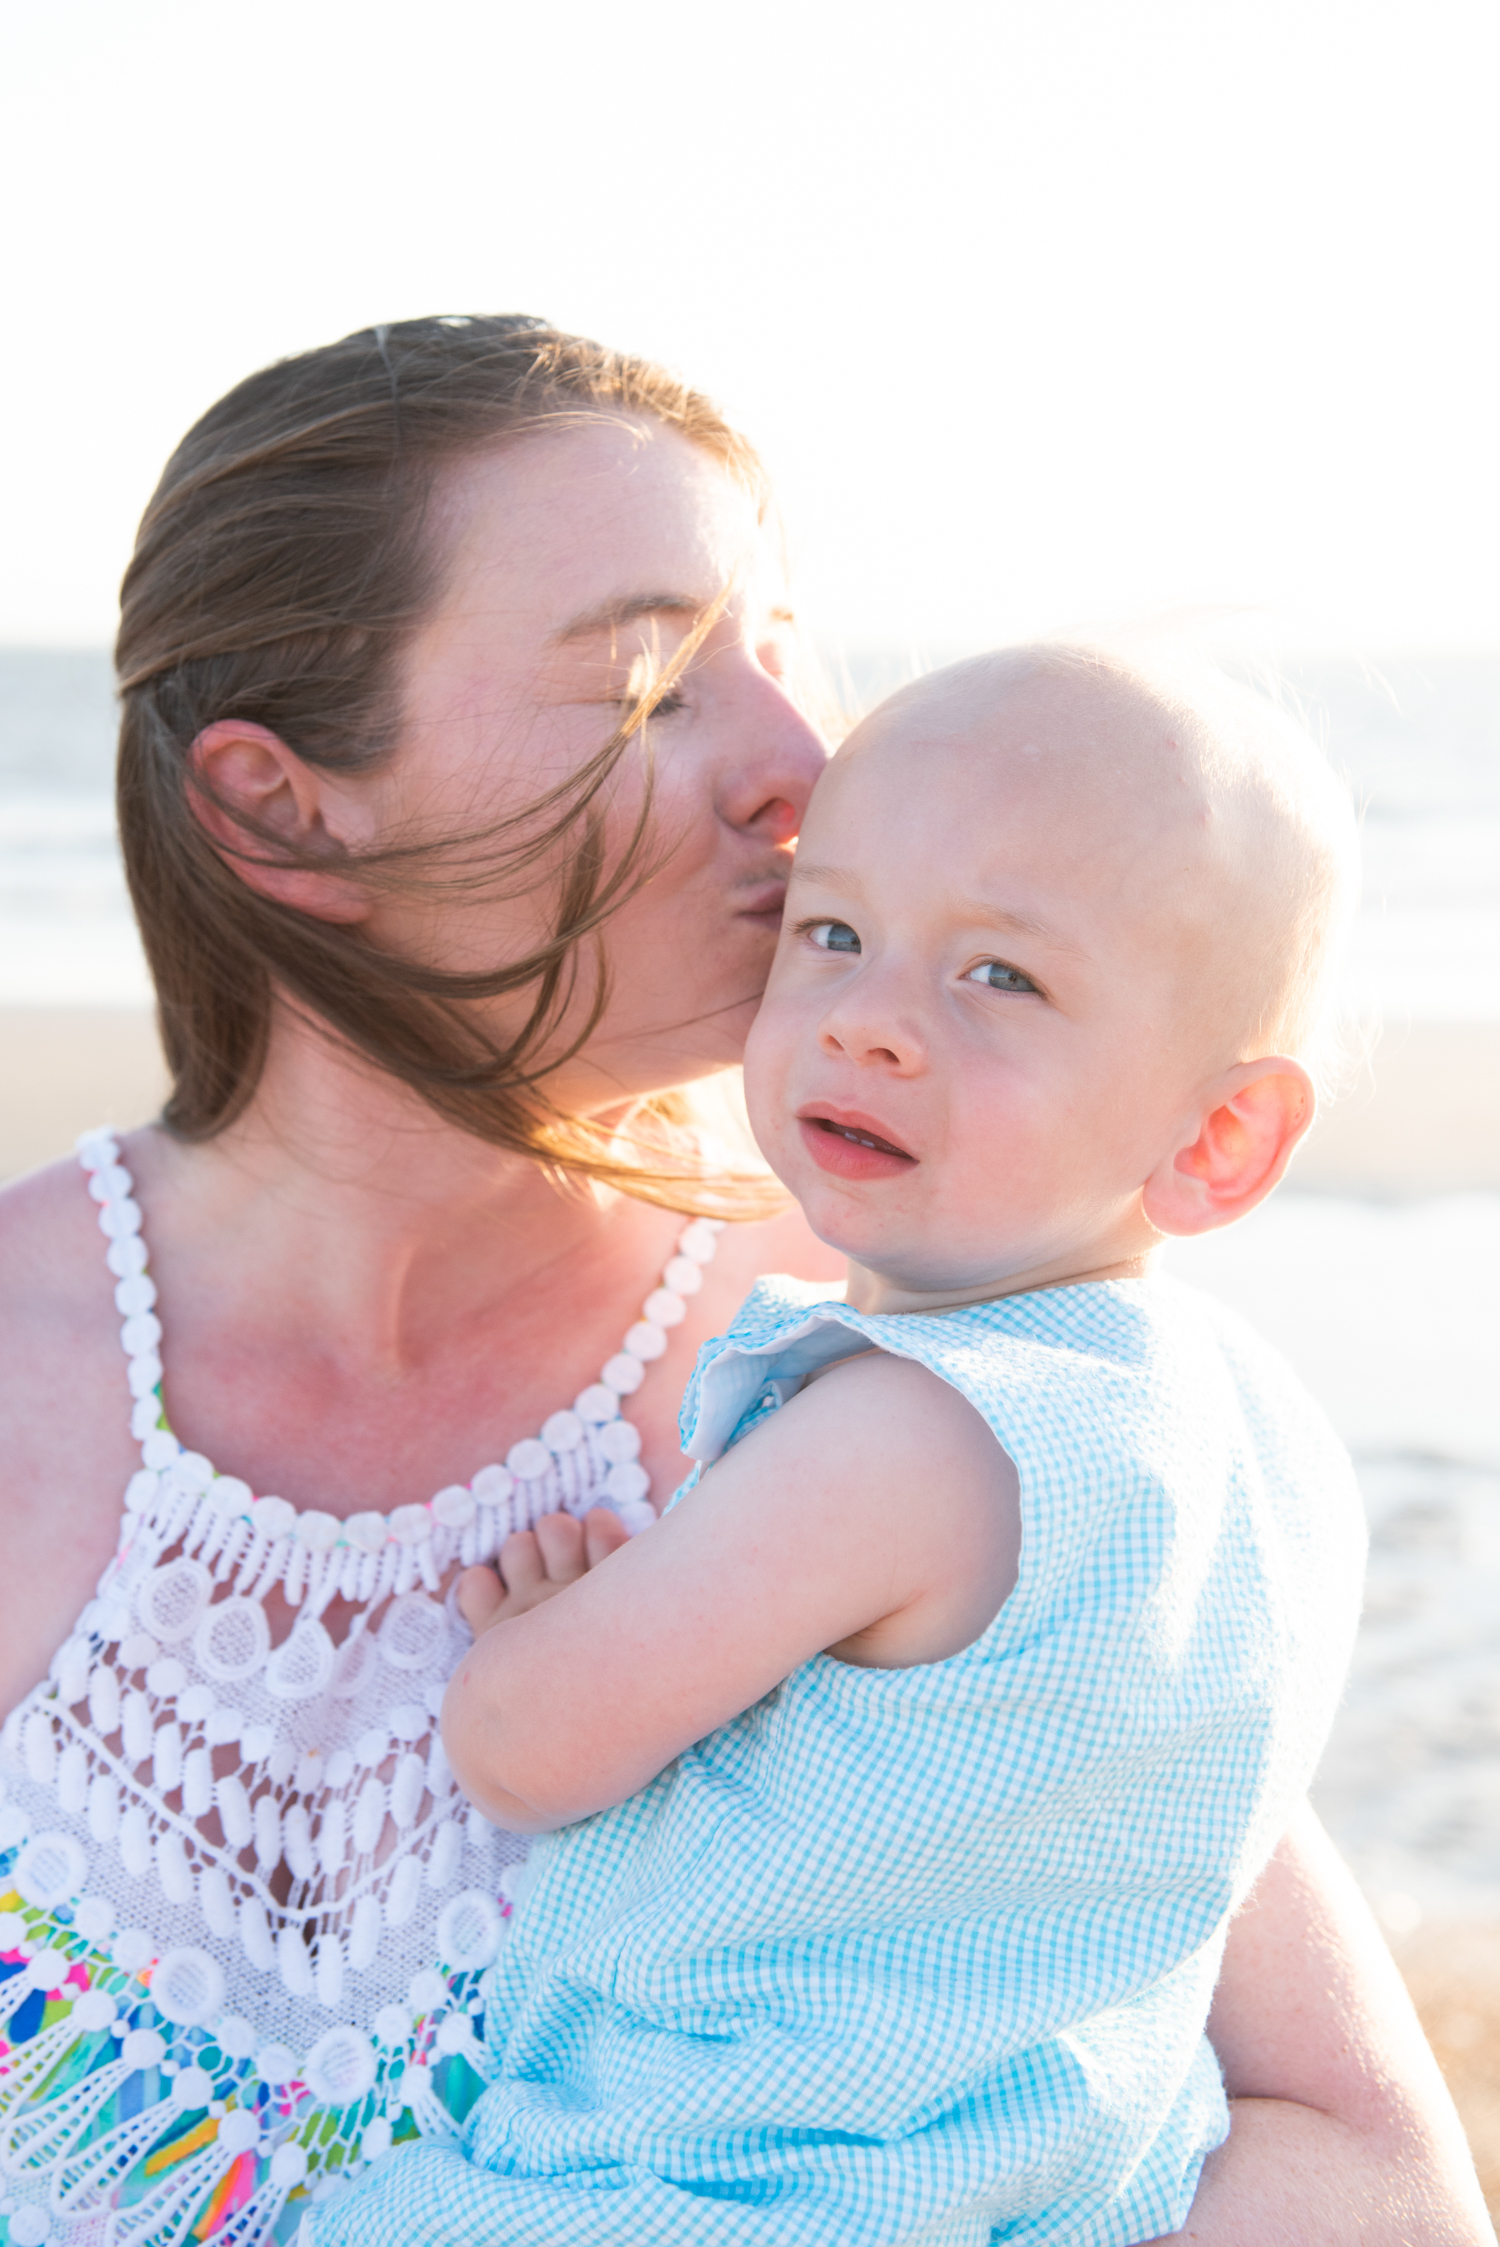 Edisto Beach Family Portrait by Reese Moore Photography